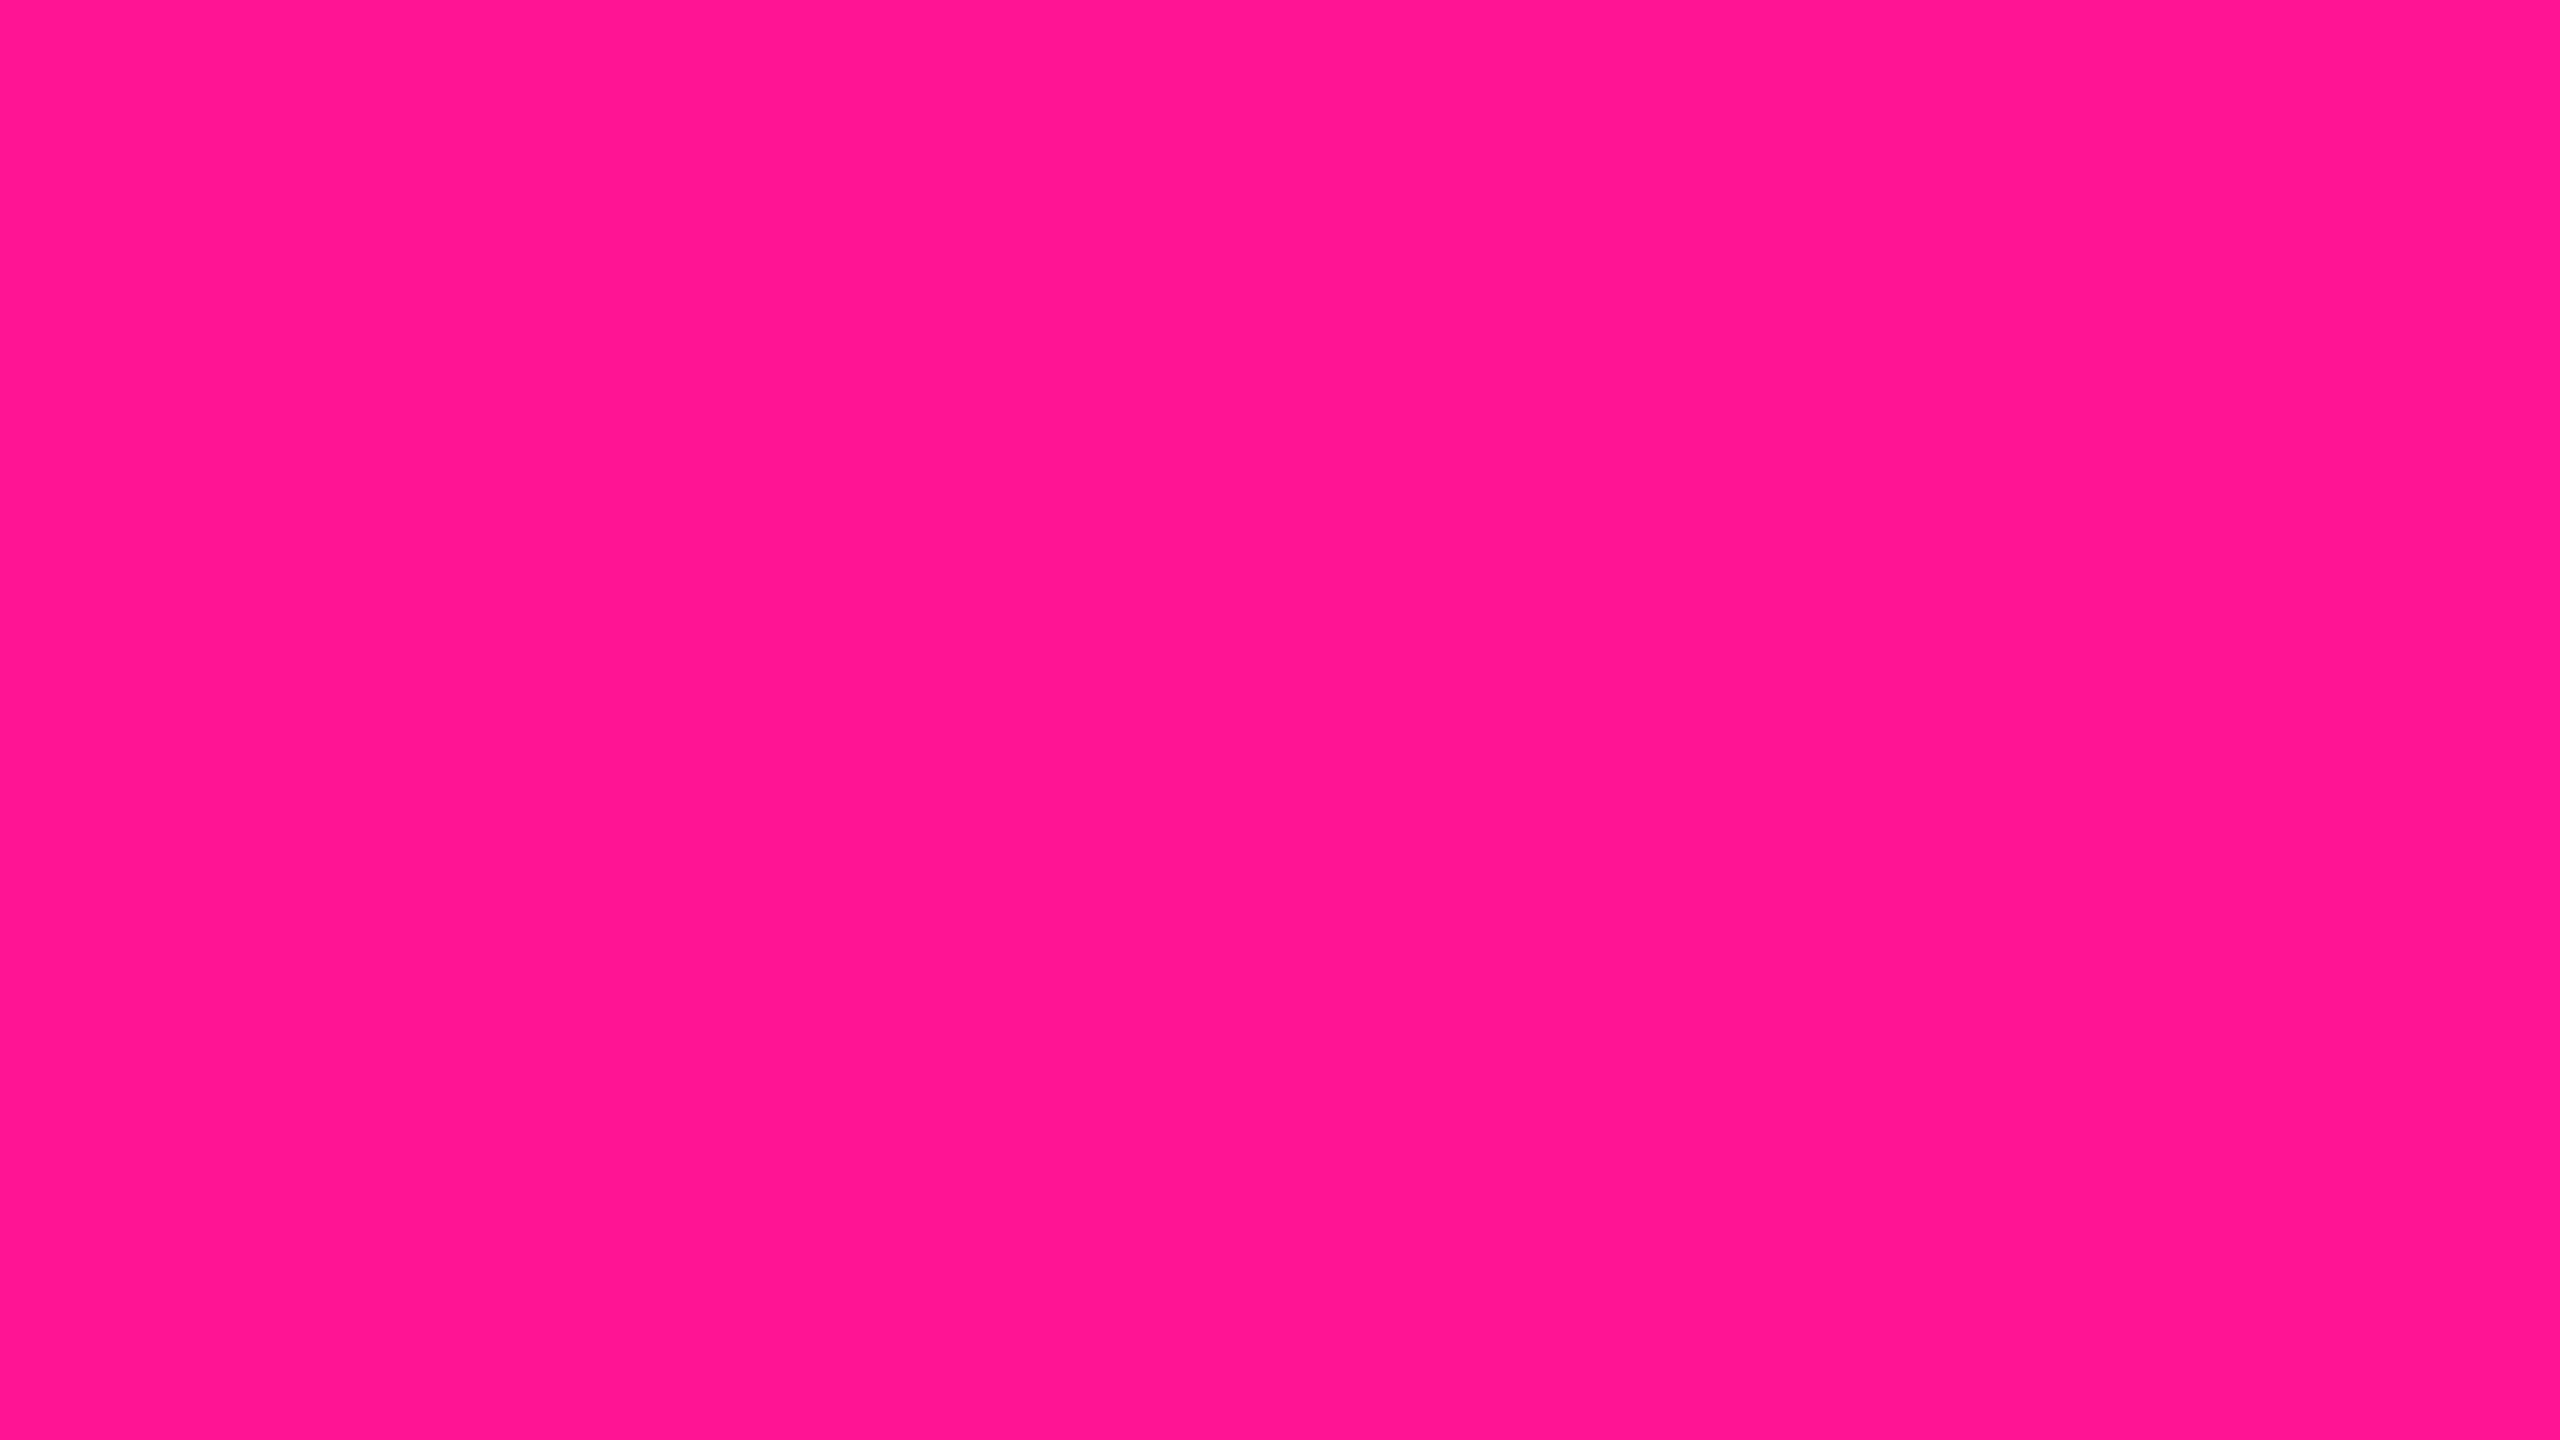 Which 2560x1440 Fluorescent Pink Solid Color Background